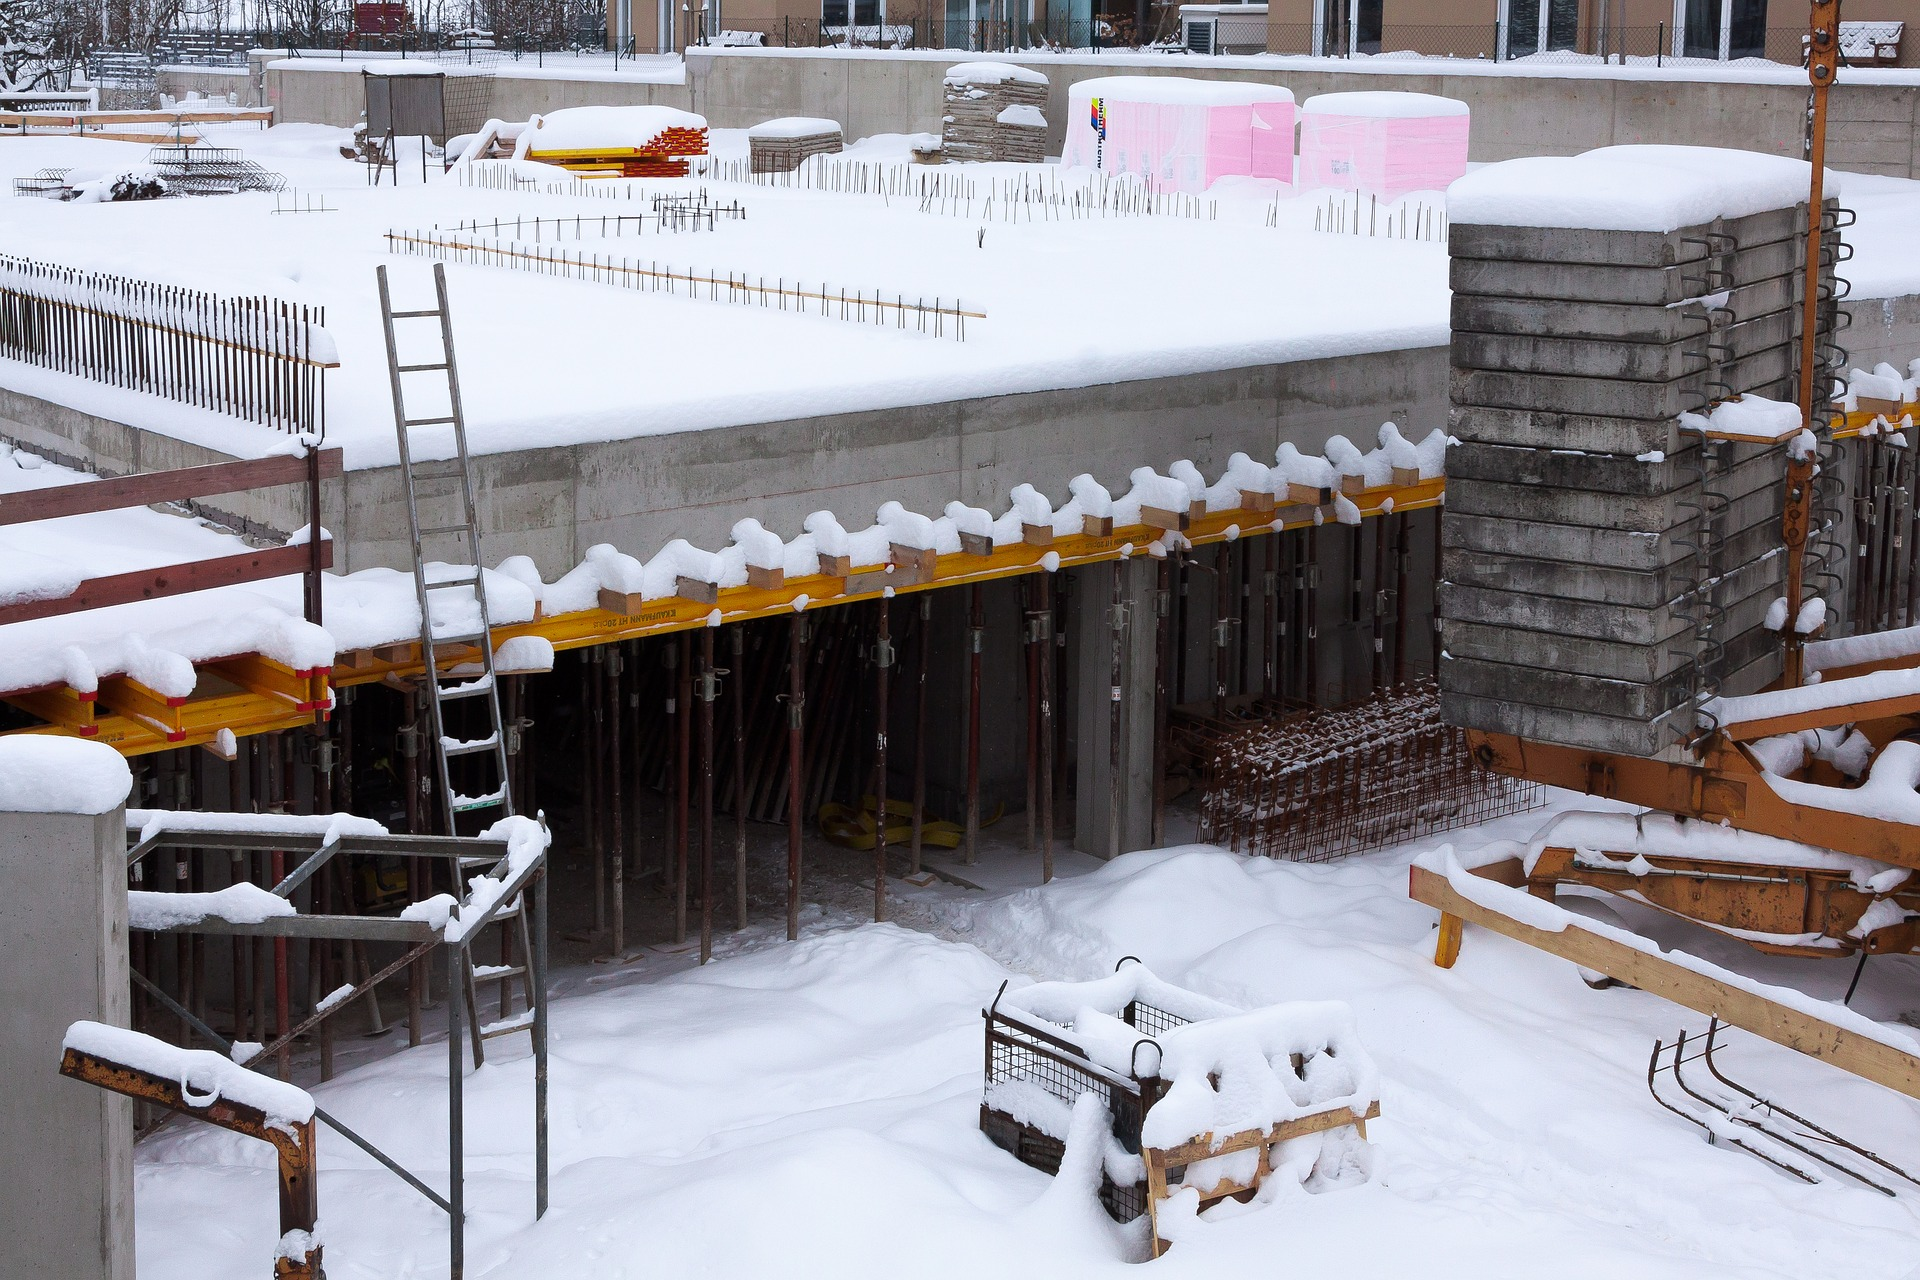 Snowy construction site